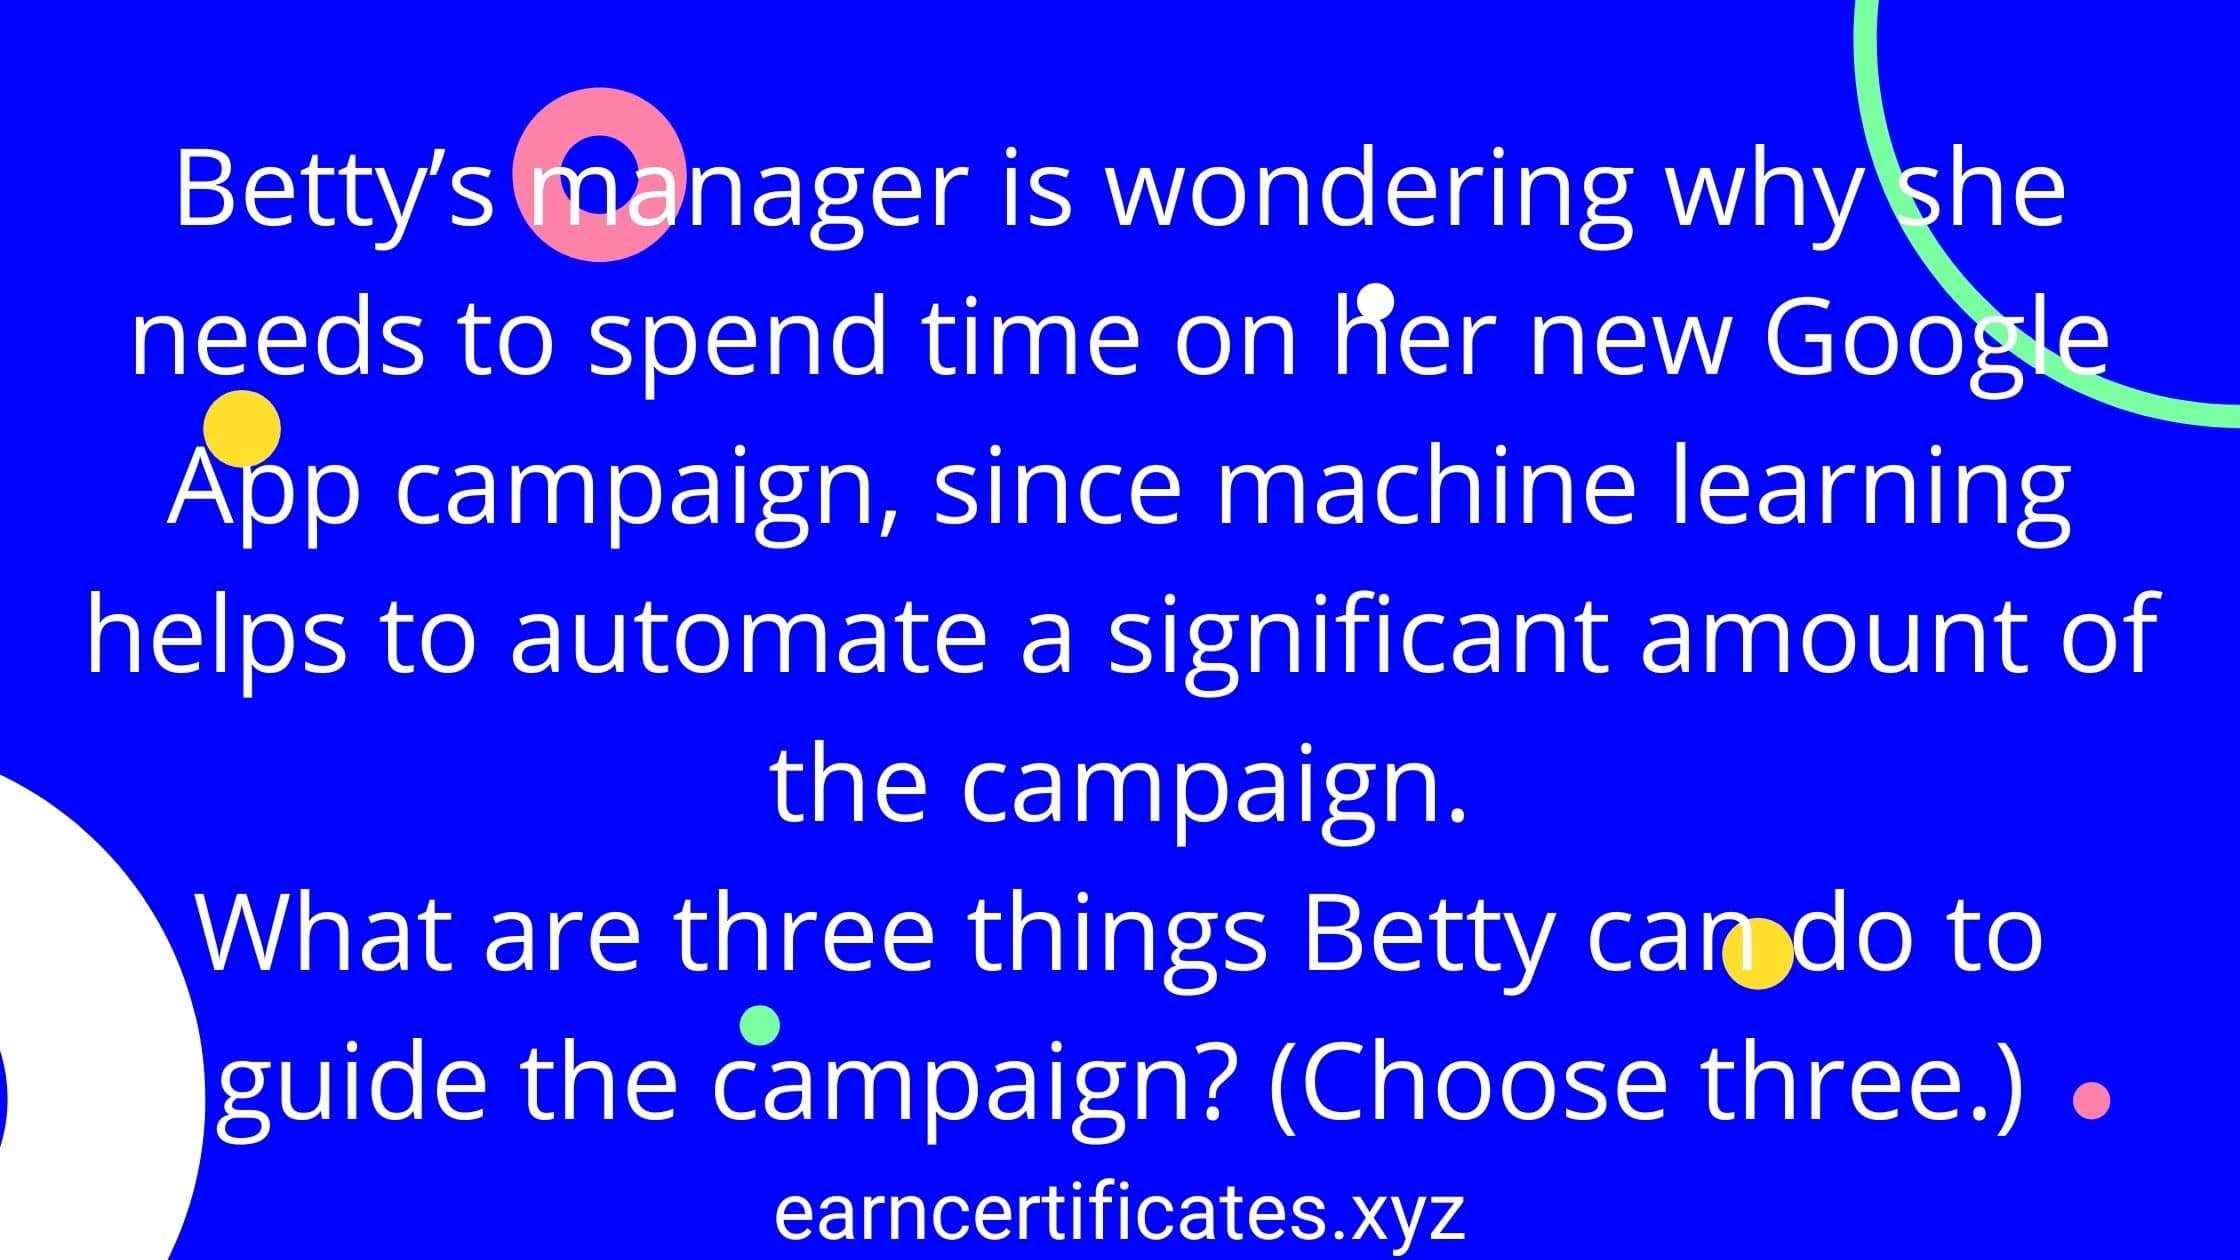 betty's-manager-is-wondering-why-she-needs-to-spend-time-on-her-new-google-app-campaign-since-machine-learning-helps-to-automate-a-significant-amount-of-the-campaign-what-are-three-things-betty-can-do-to-guide-the-campaign-(Choose-three)